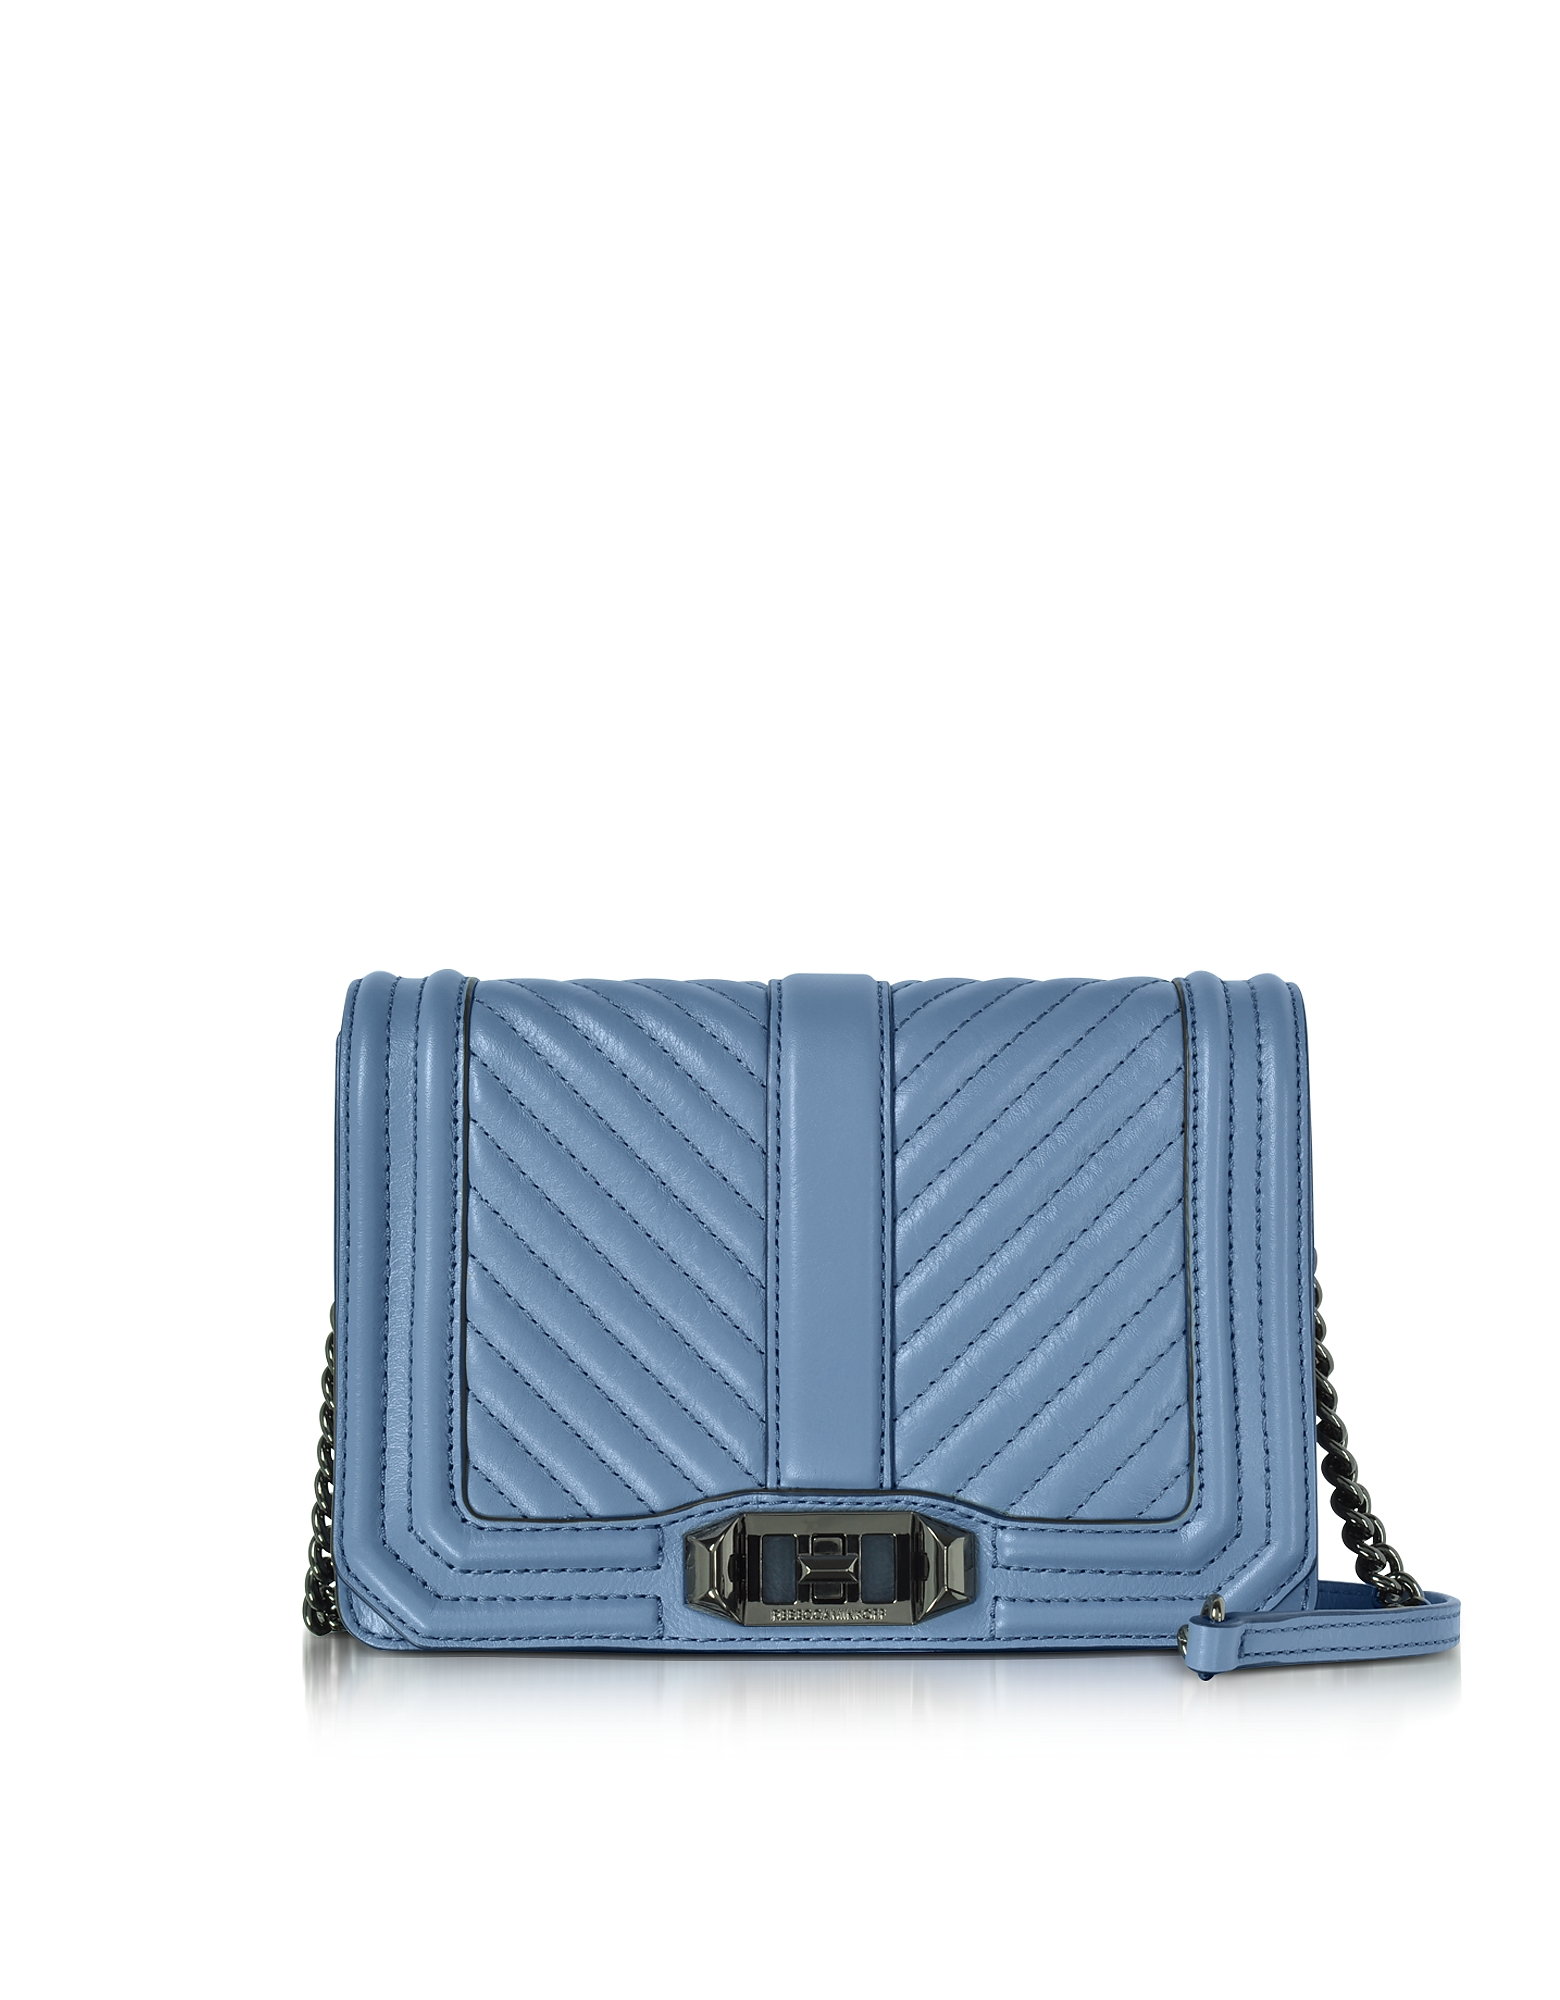 Rebecca Minkoff Handbags, Azure Chevron Quilted Leather Small Love Crossbody Bag